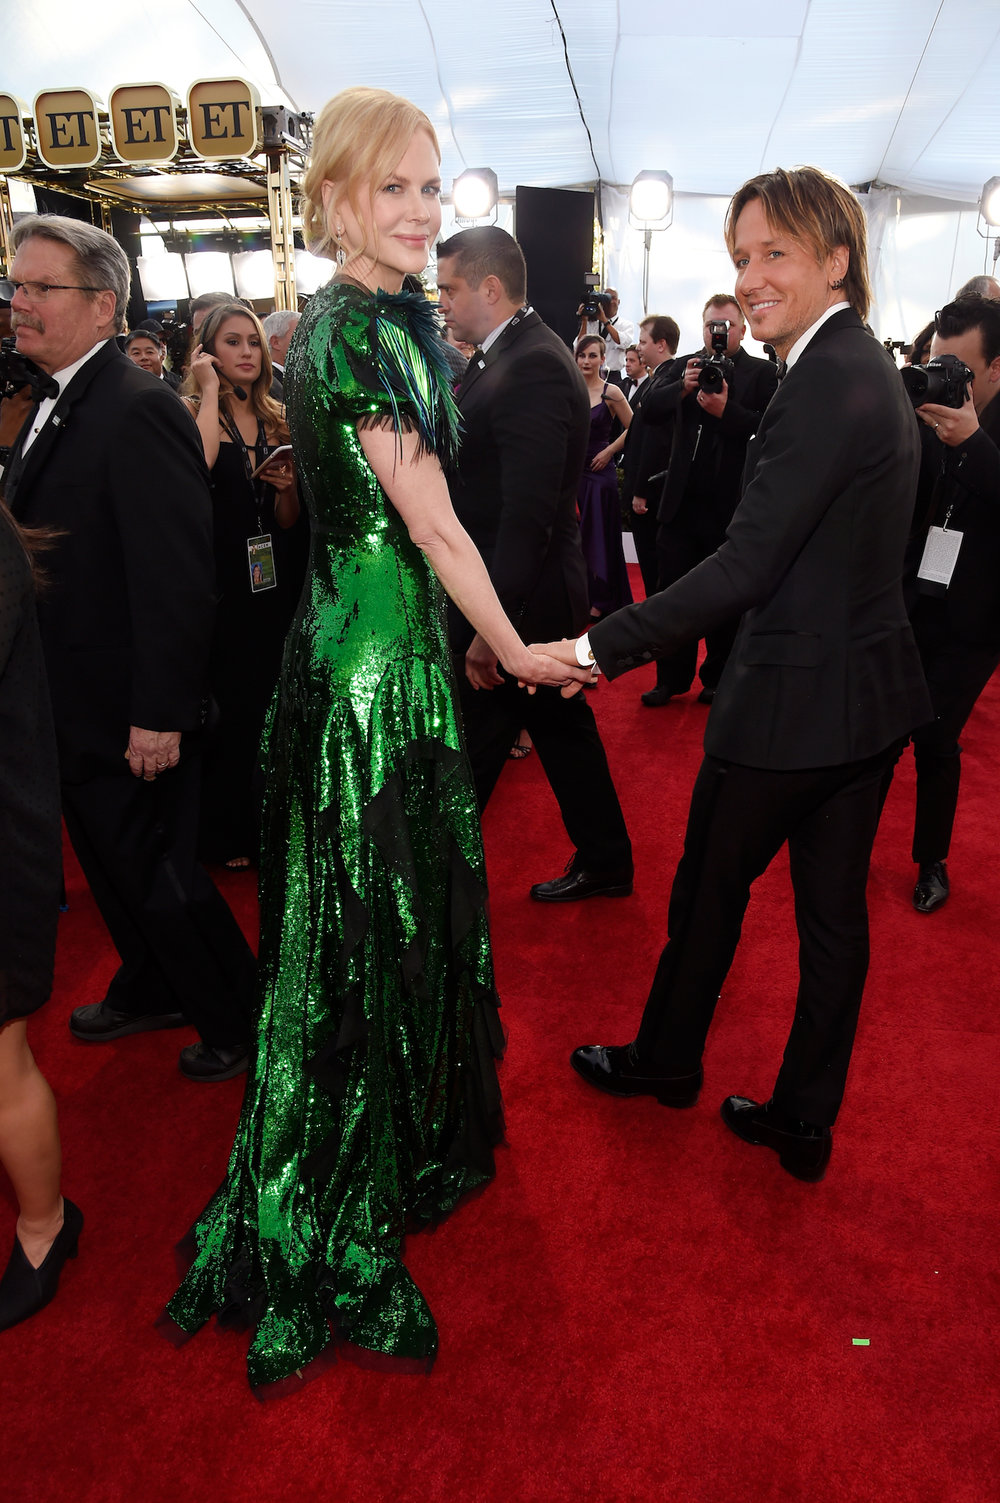 LOS ANGELES, CA - JANUARY 29:  Actor Nicole Kidman (L) and musician Keith Urban attend The 23rd Annual Screen Actors Guild Awards at The Shrine Auditorium on January 29, 2017 in Los Angeles, California. 26592_011  (Photo by Kevin Mazur/Getty Images for TNT) *** Local Caption *** Nicole Kidman;Keith Urban